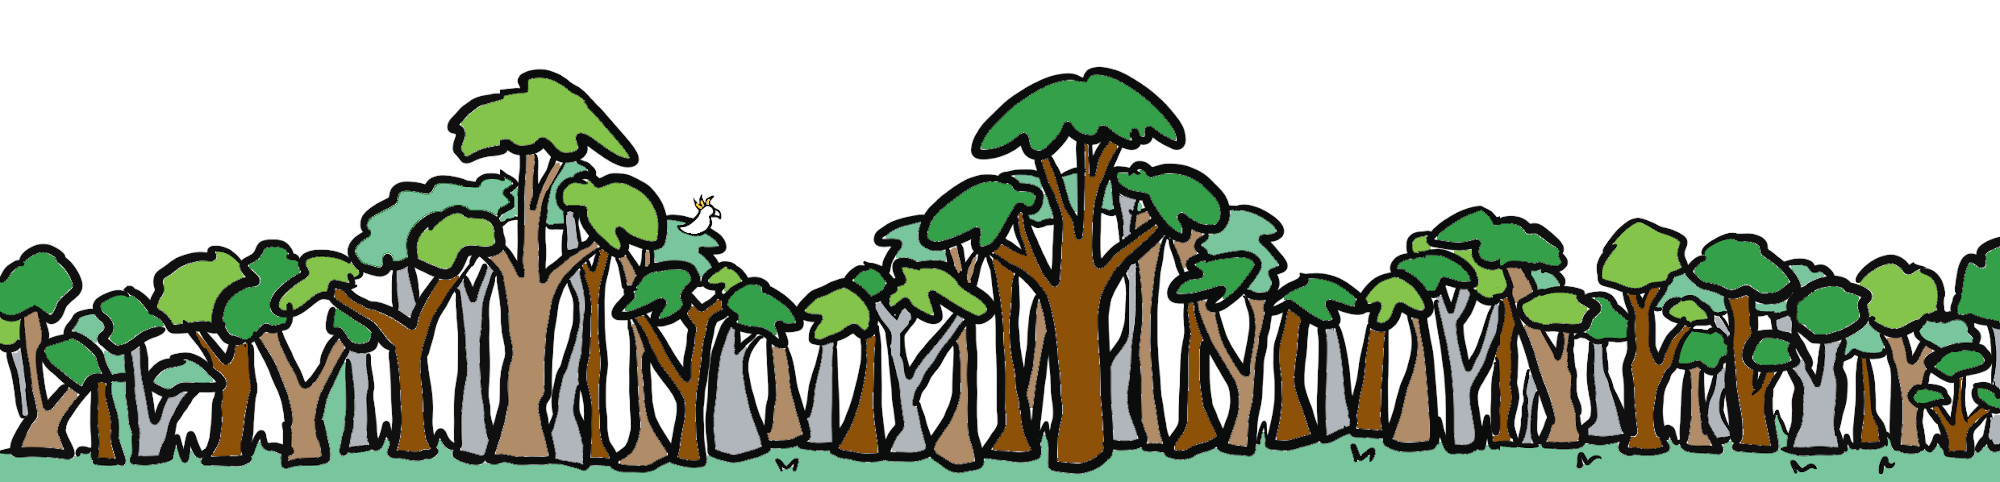 drawing of a line of trees